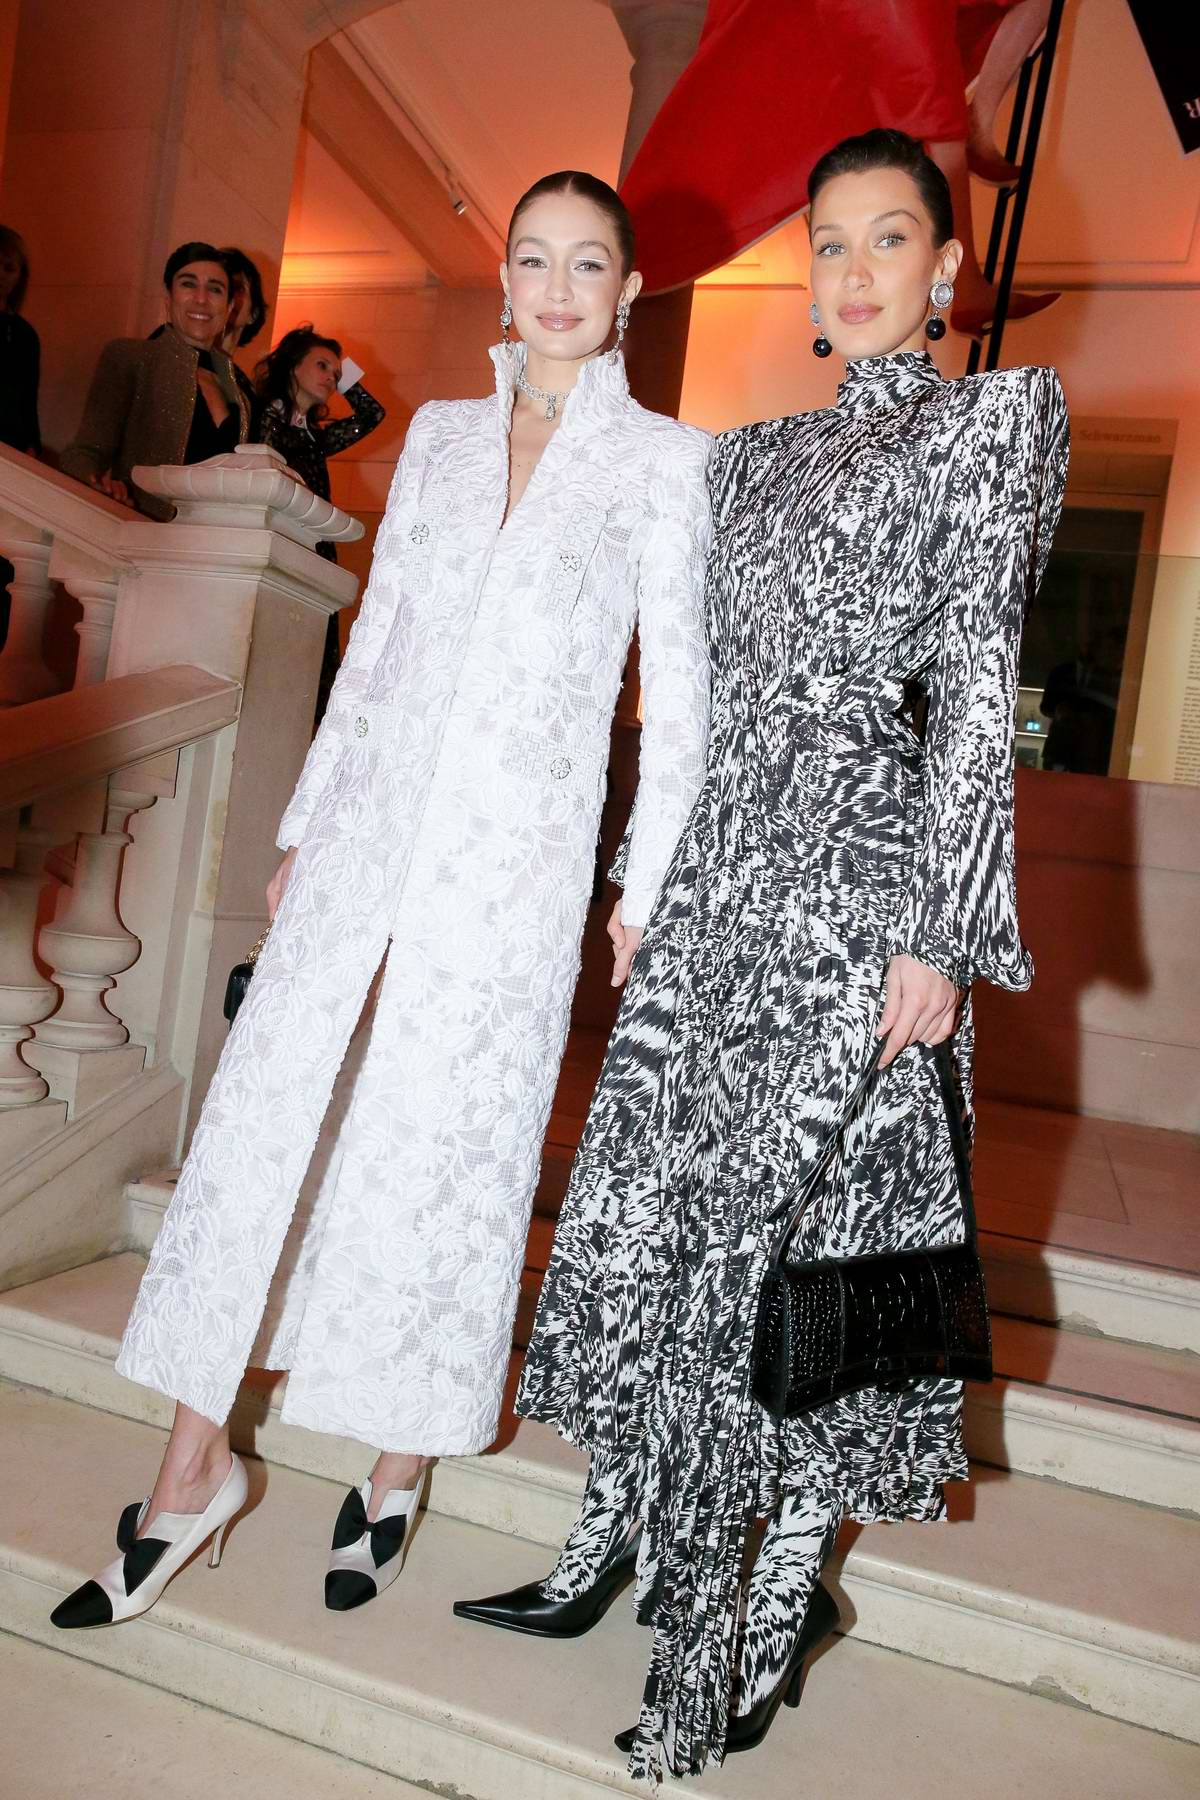 Bella Hadid and Gigi Hadid attend the Harper's Bazaar gala during Paris Fashion Week 2020 in Paris, France